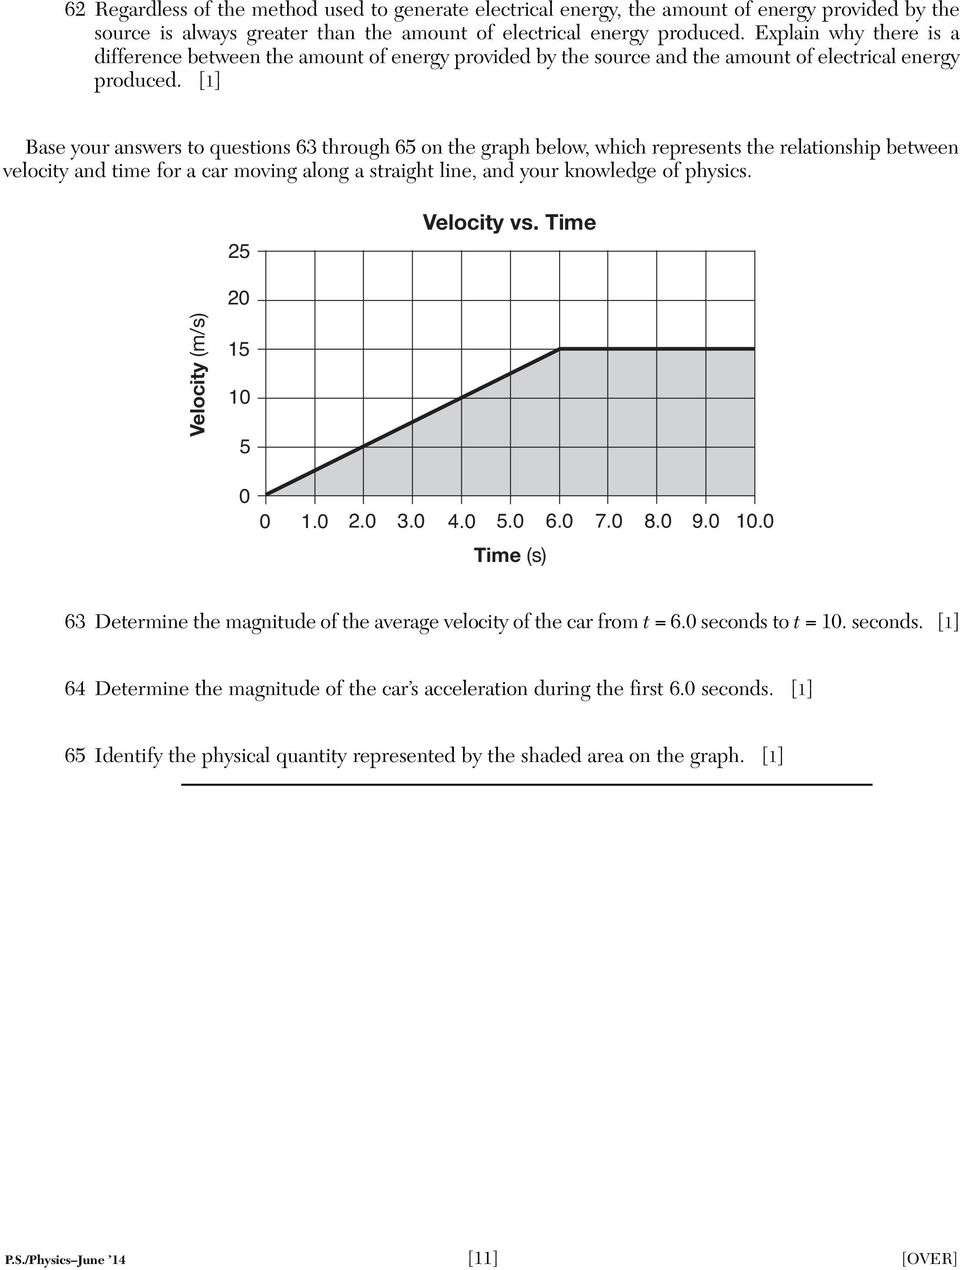 [1] Base your answers to questions 63 through 65 on the graph below, which represents the relationship between velocity and time for a car moving along a straight line, and your knowledge of physics.